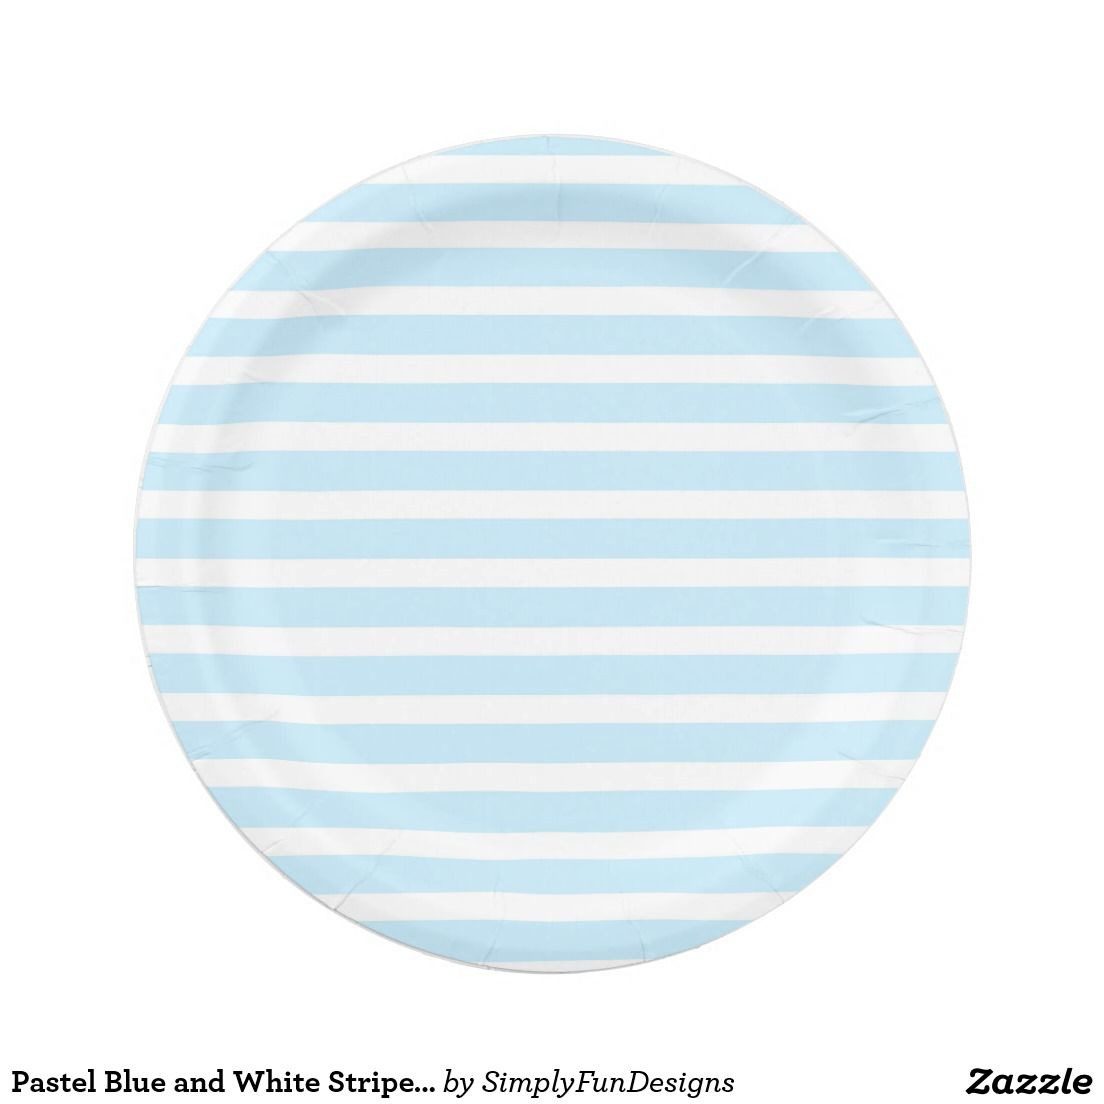 Pastel Blue and White Stripes Paper Plates 7 Inch Paper Plate  sc 1 st  Pinterest & Pastel Blue and White Stripes Paper Plates | Pastel blue and Products